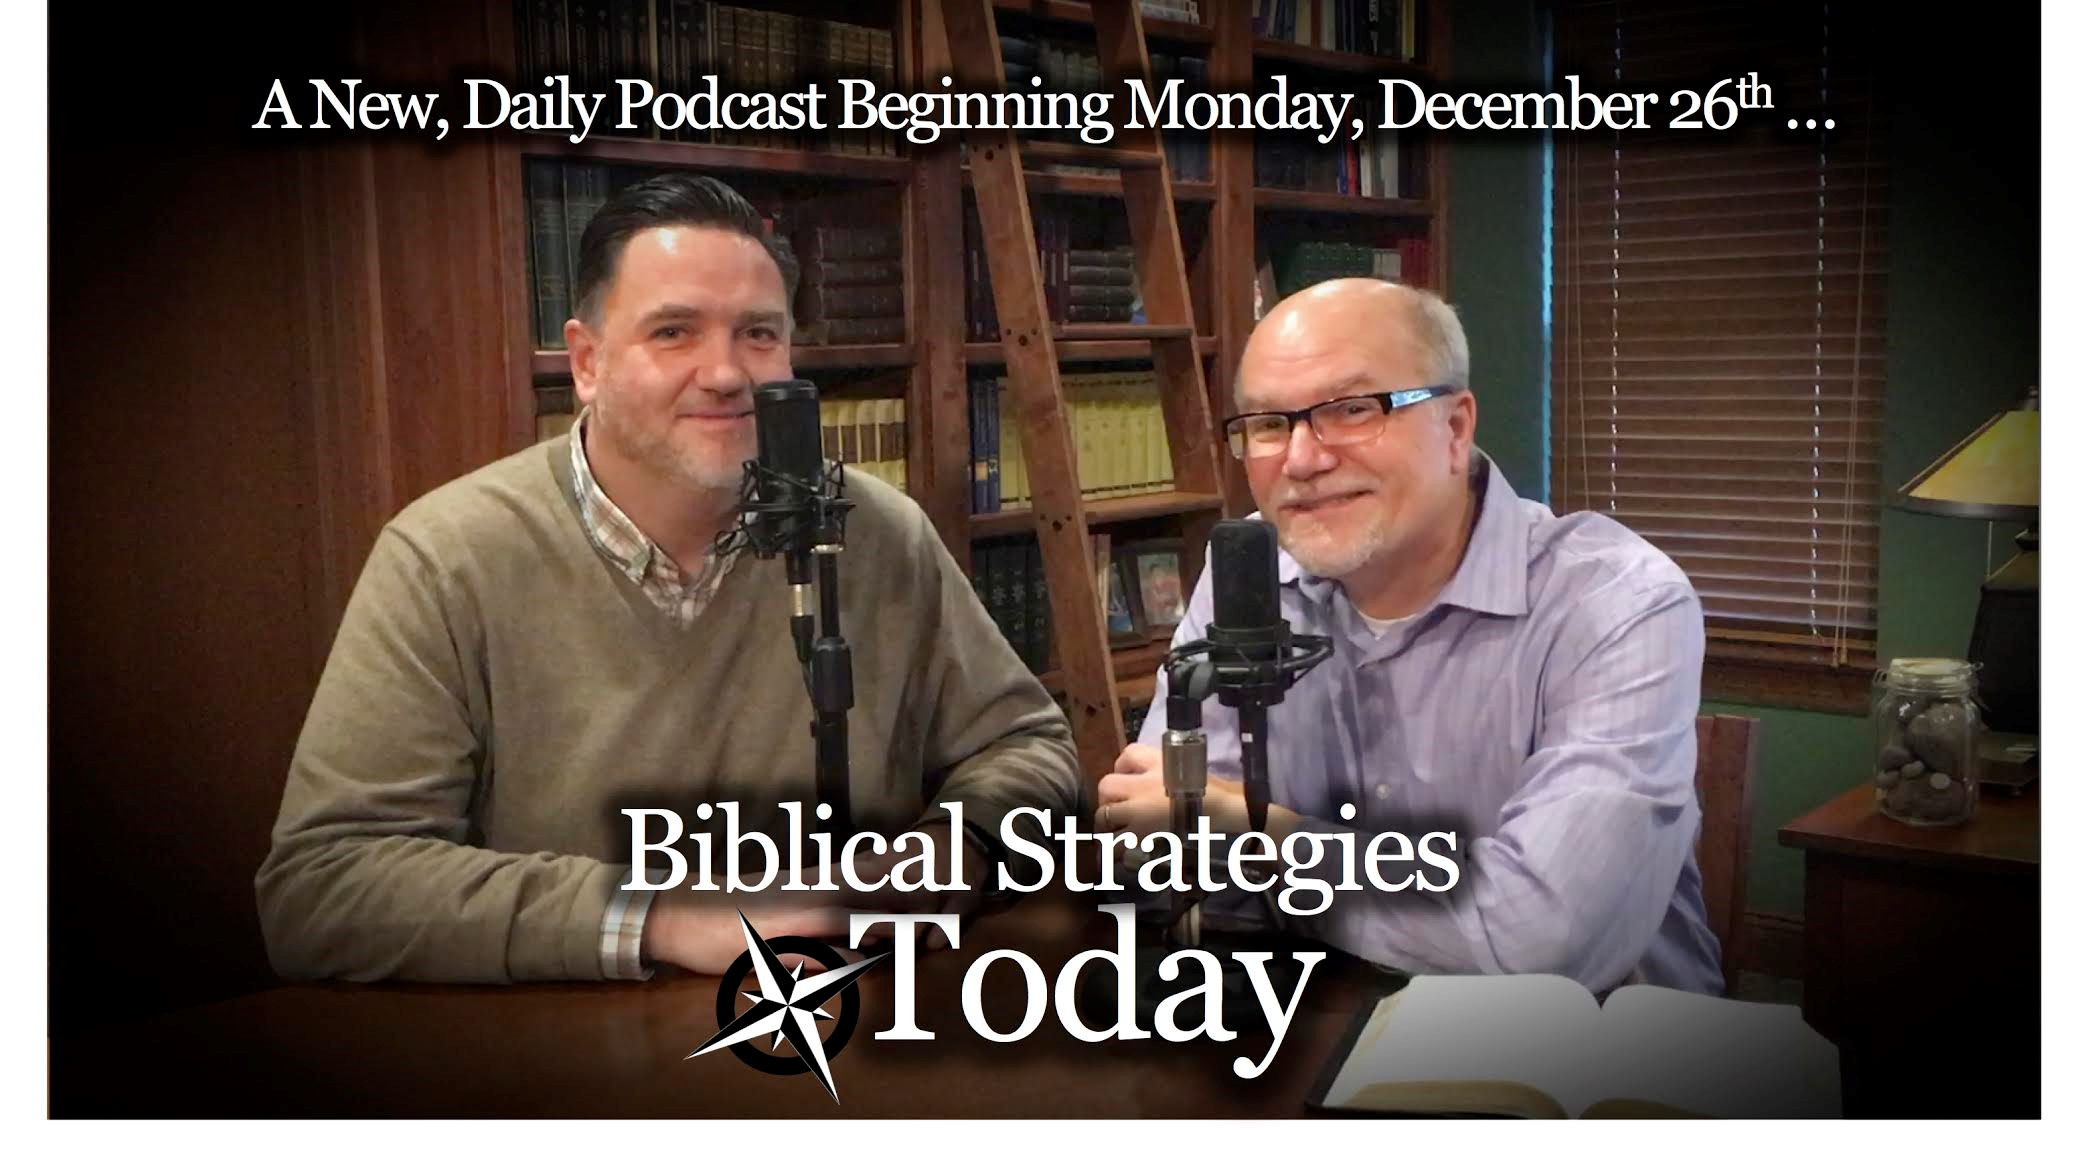 Introducing Biblical Strategies Today Podcast